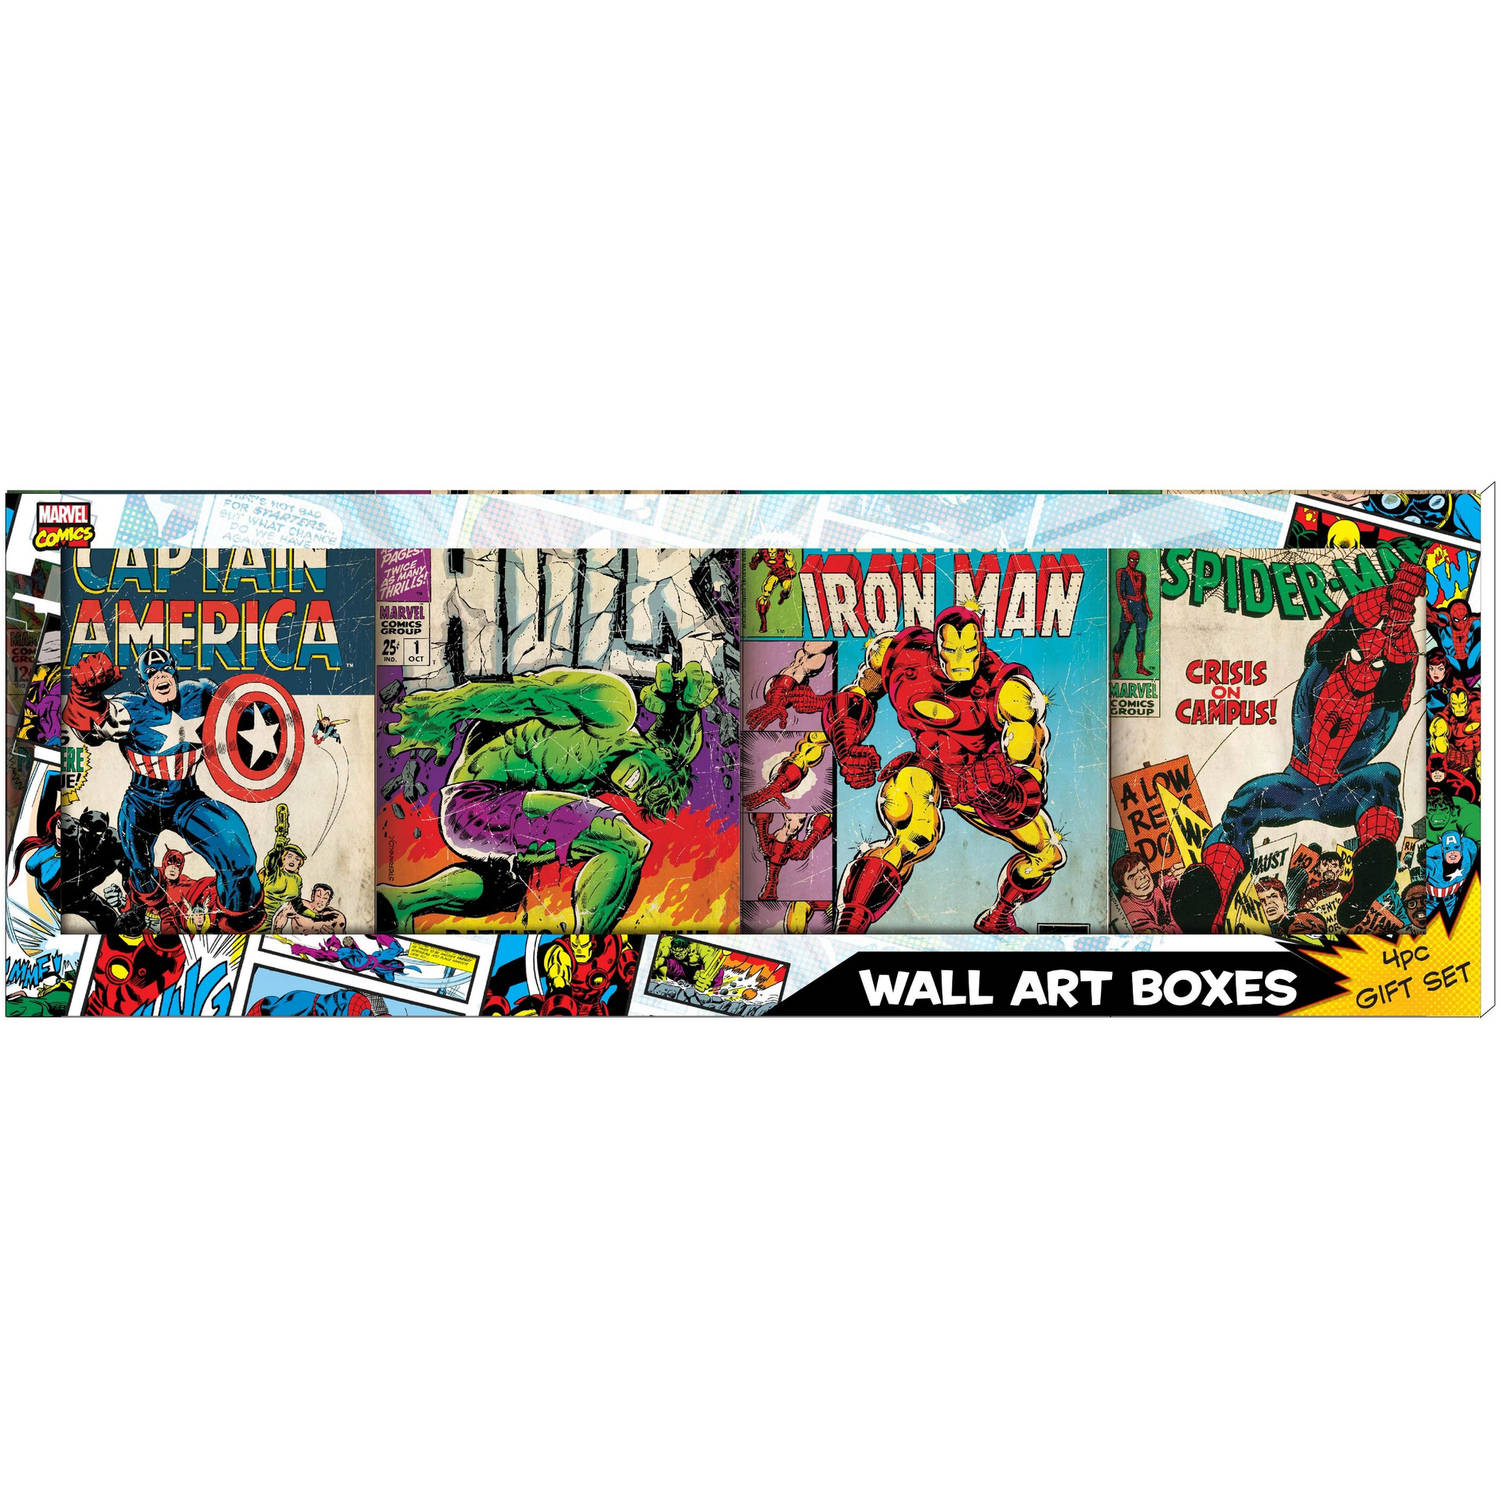 Marvel Avengers Comic Book Cover Gift Set